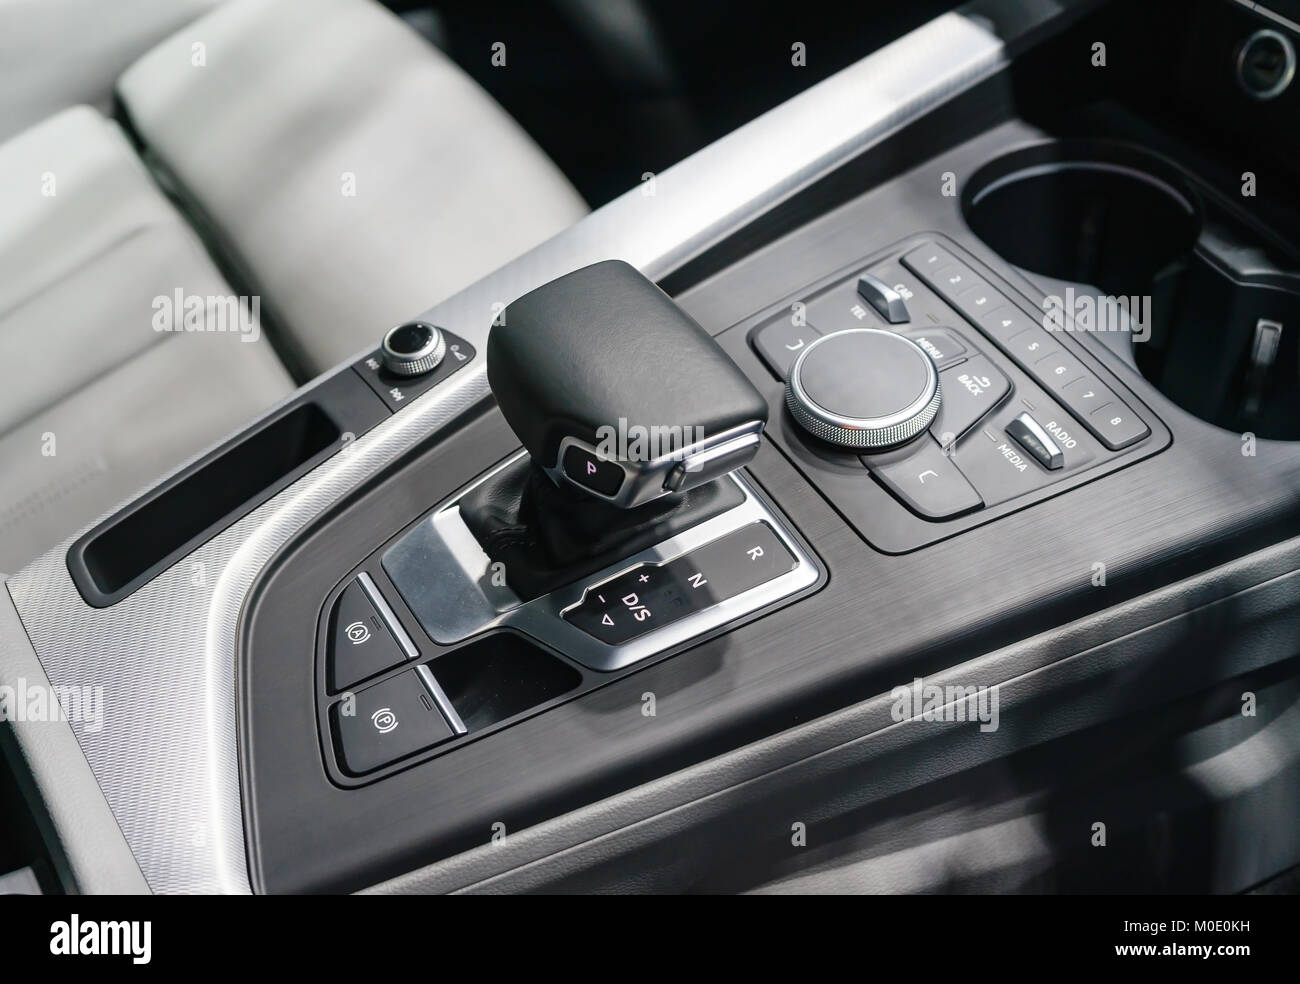 automatic gear stick of a modern car, car interior details